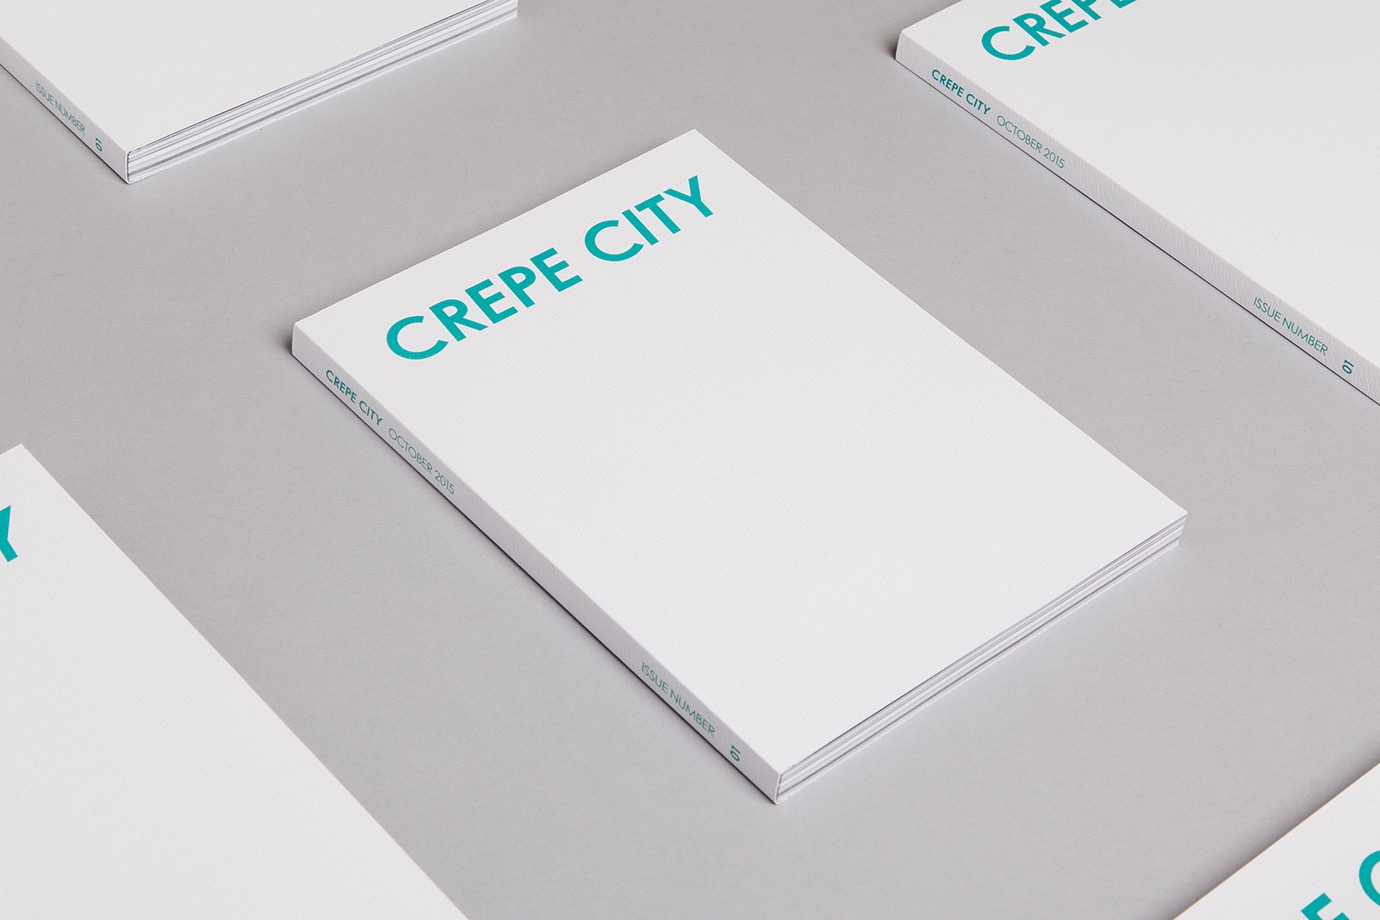 Crepe City Magazine #1